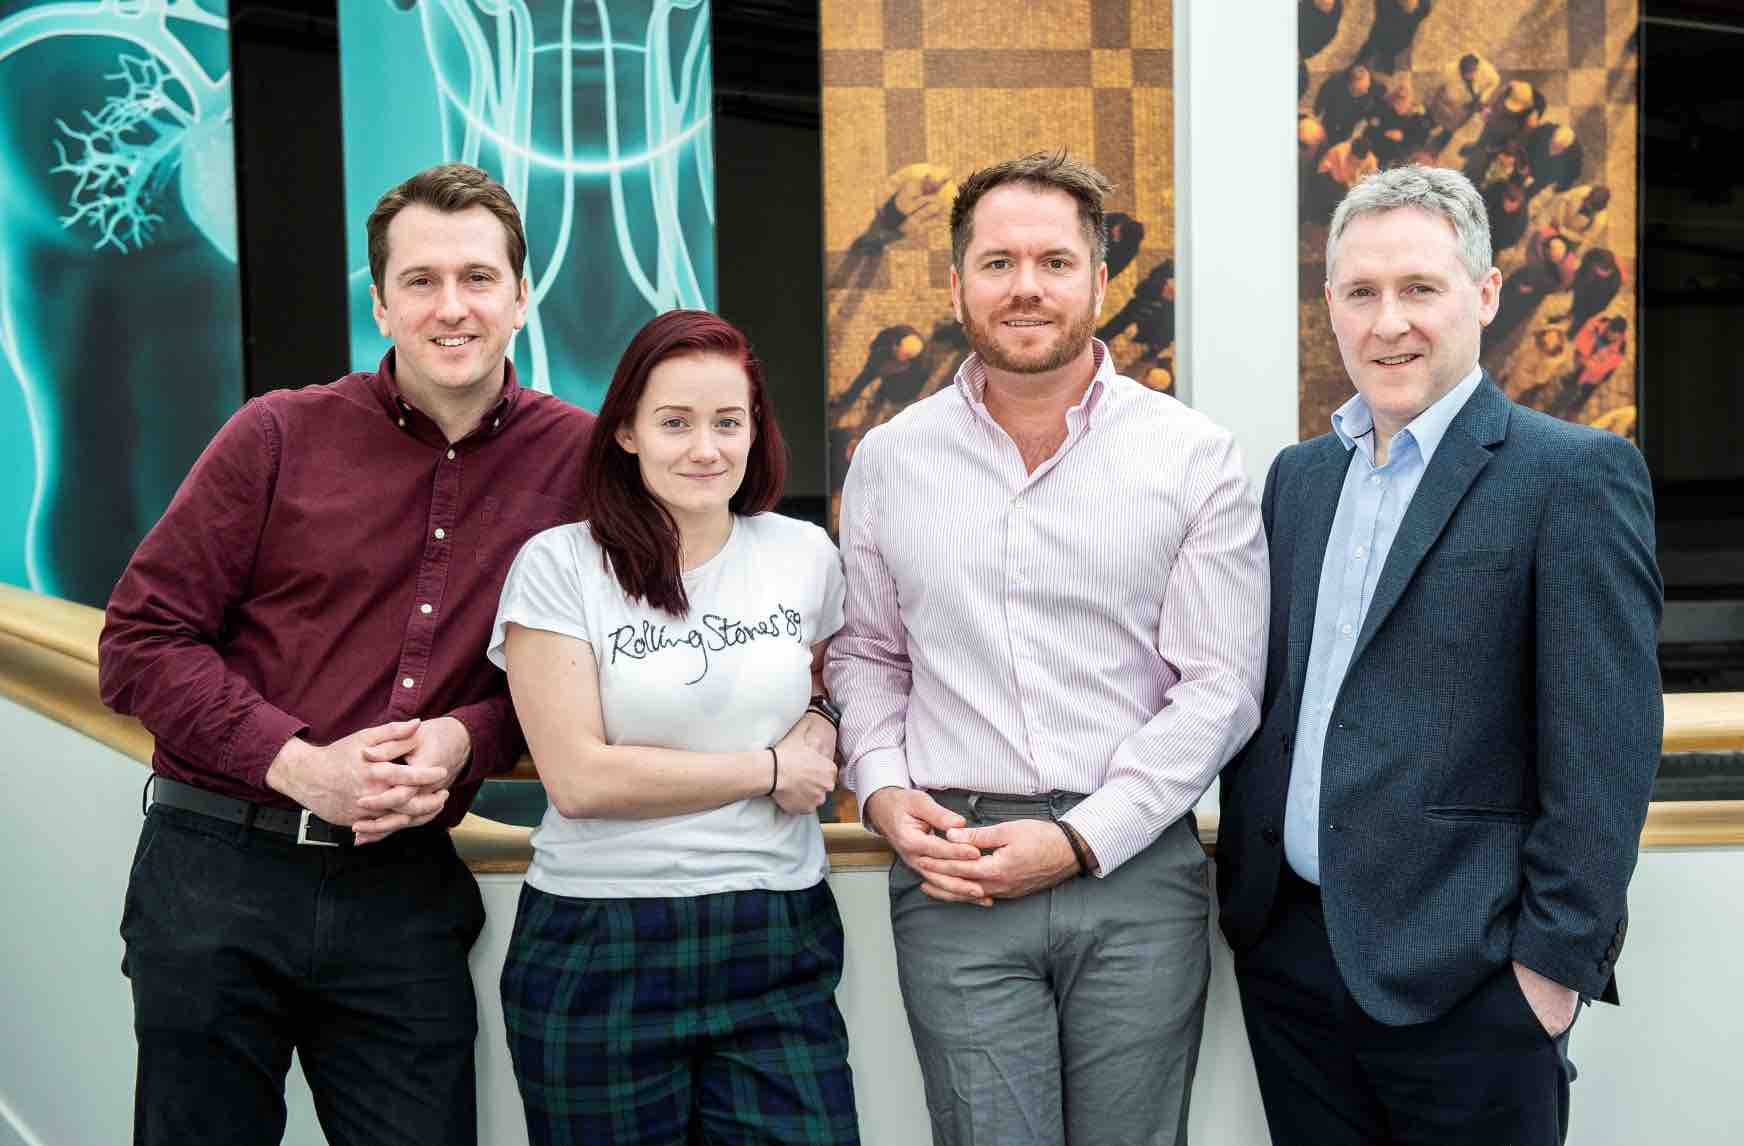 ClinSpec Diagnostics secures £1.1 million Seed Follow On investment led by Norcliffe Capital